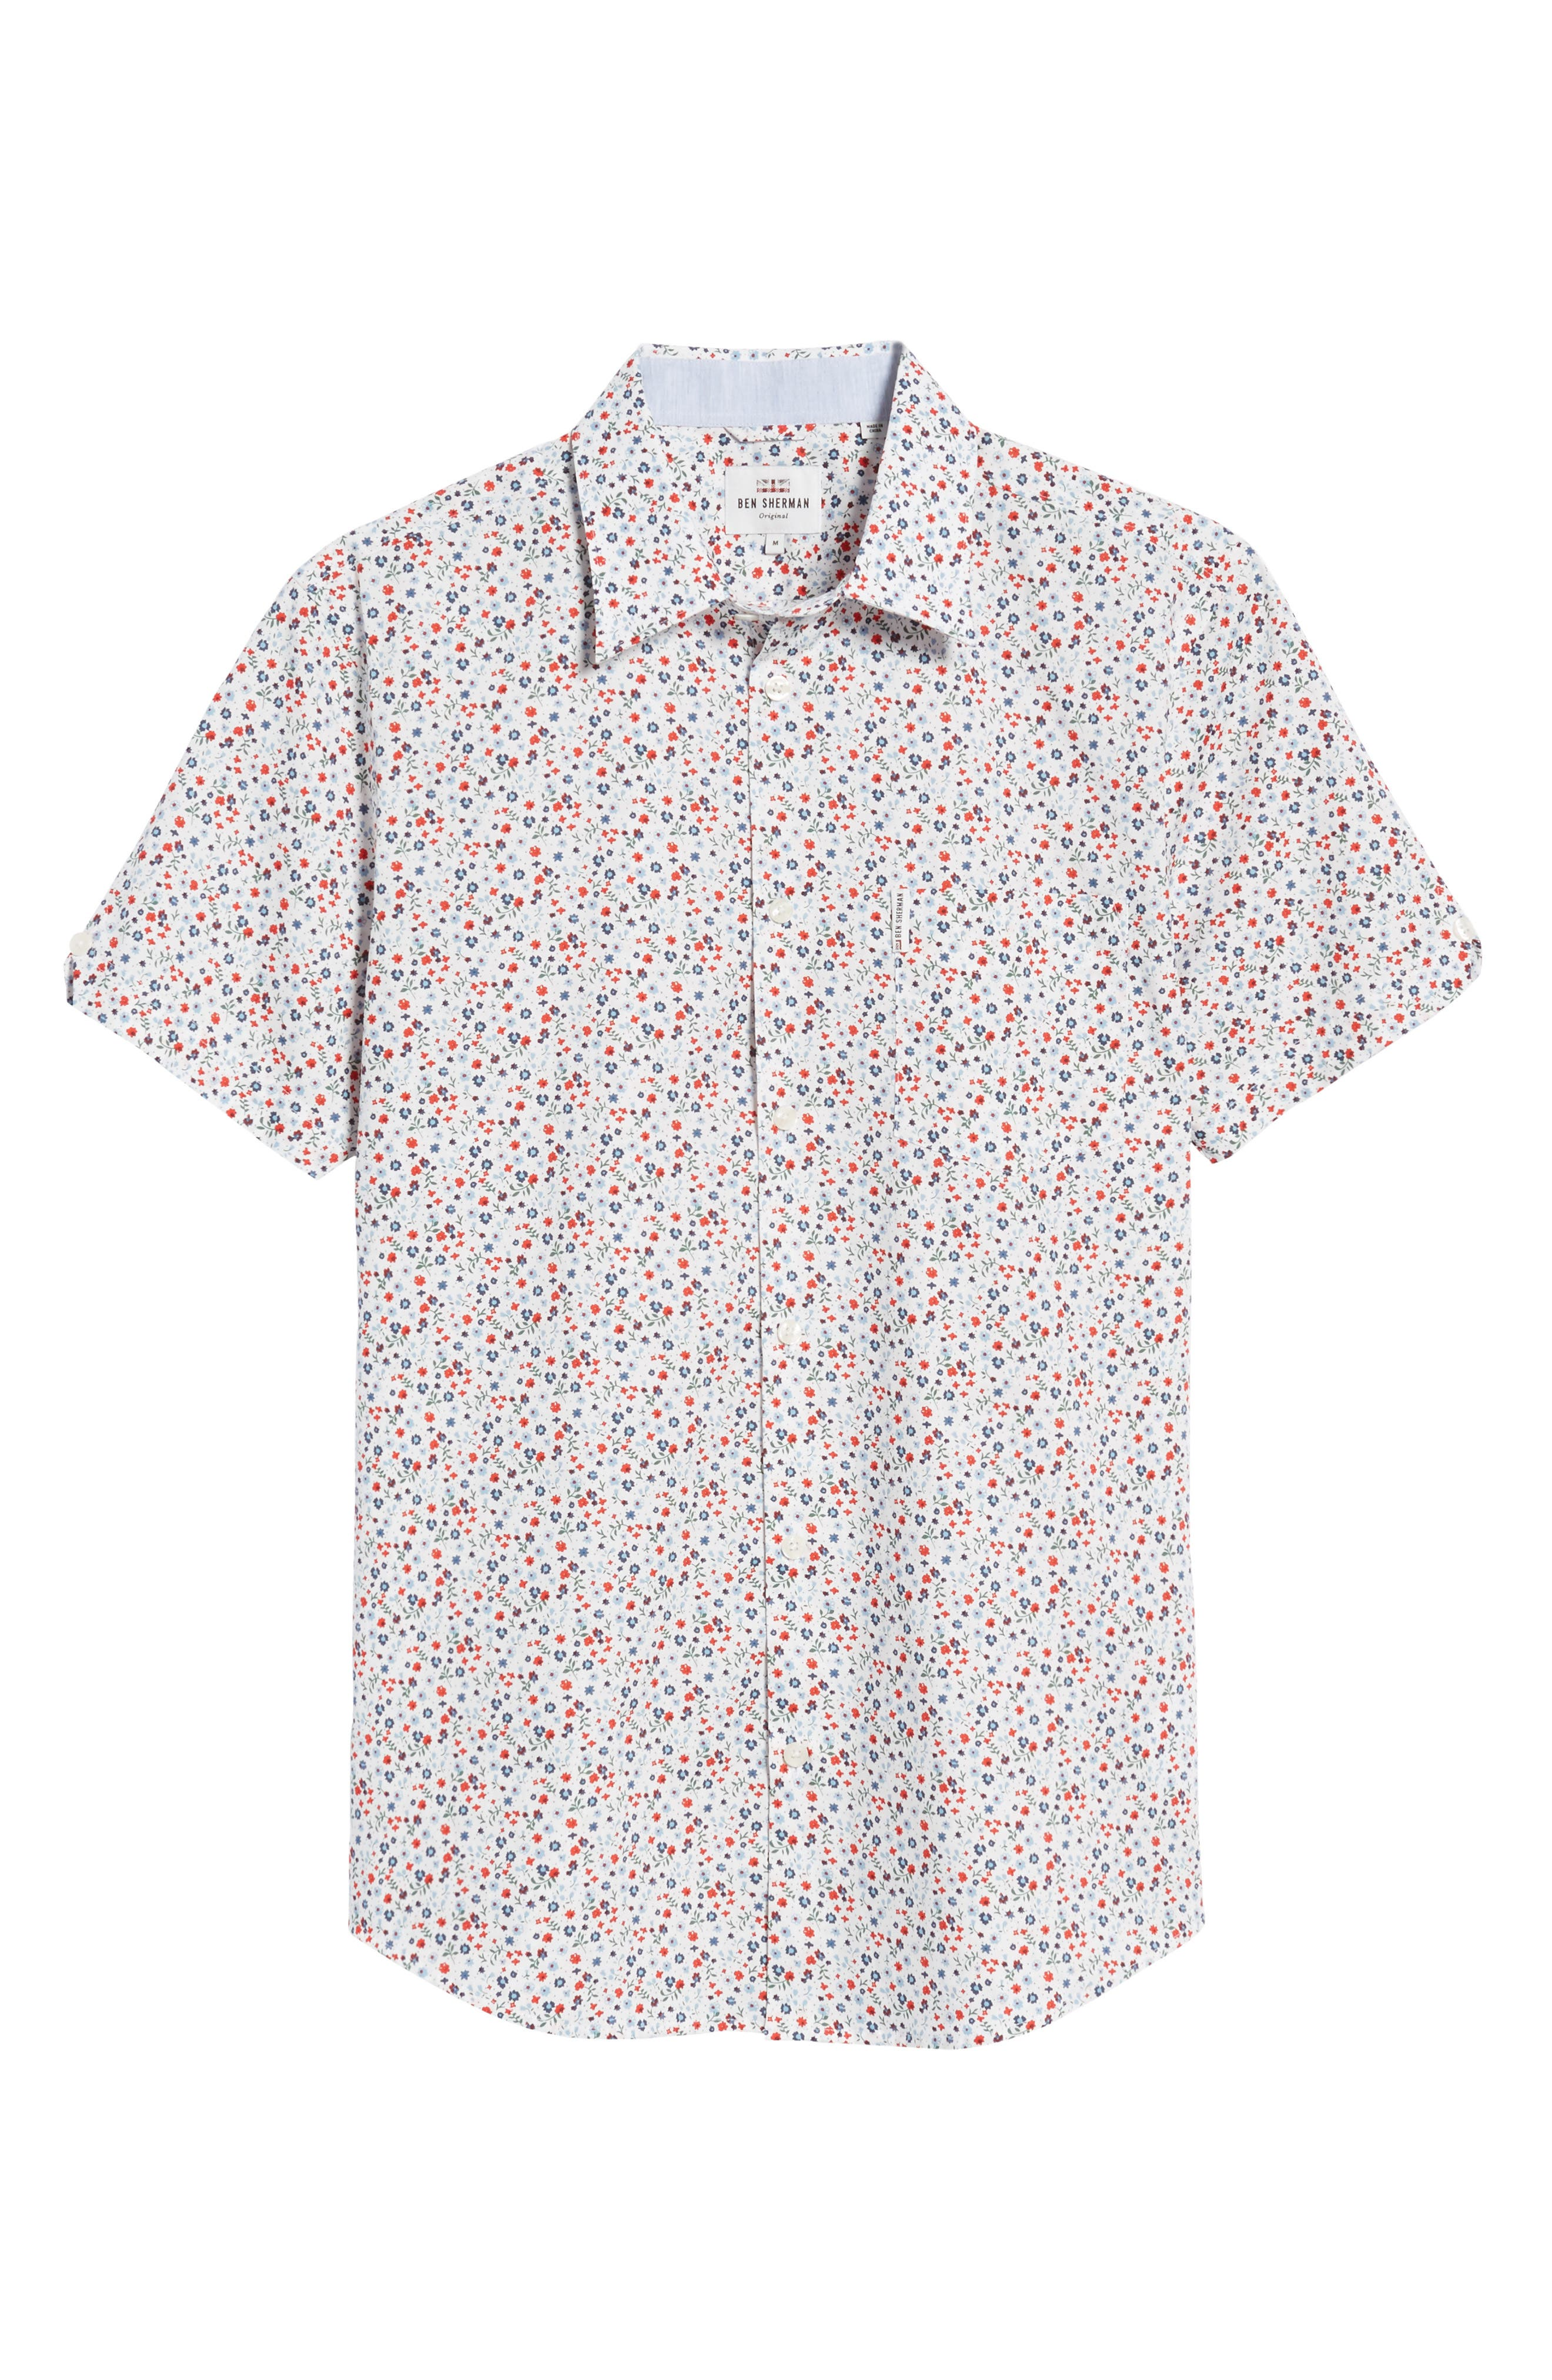 Micro Floral Woven Shirt,                             Alternate thumbnail 6, color,                             White